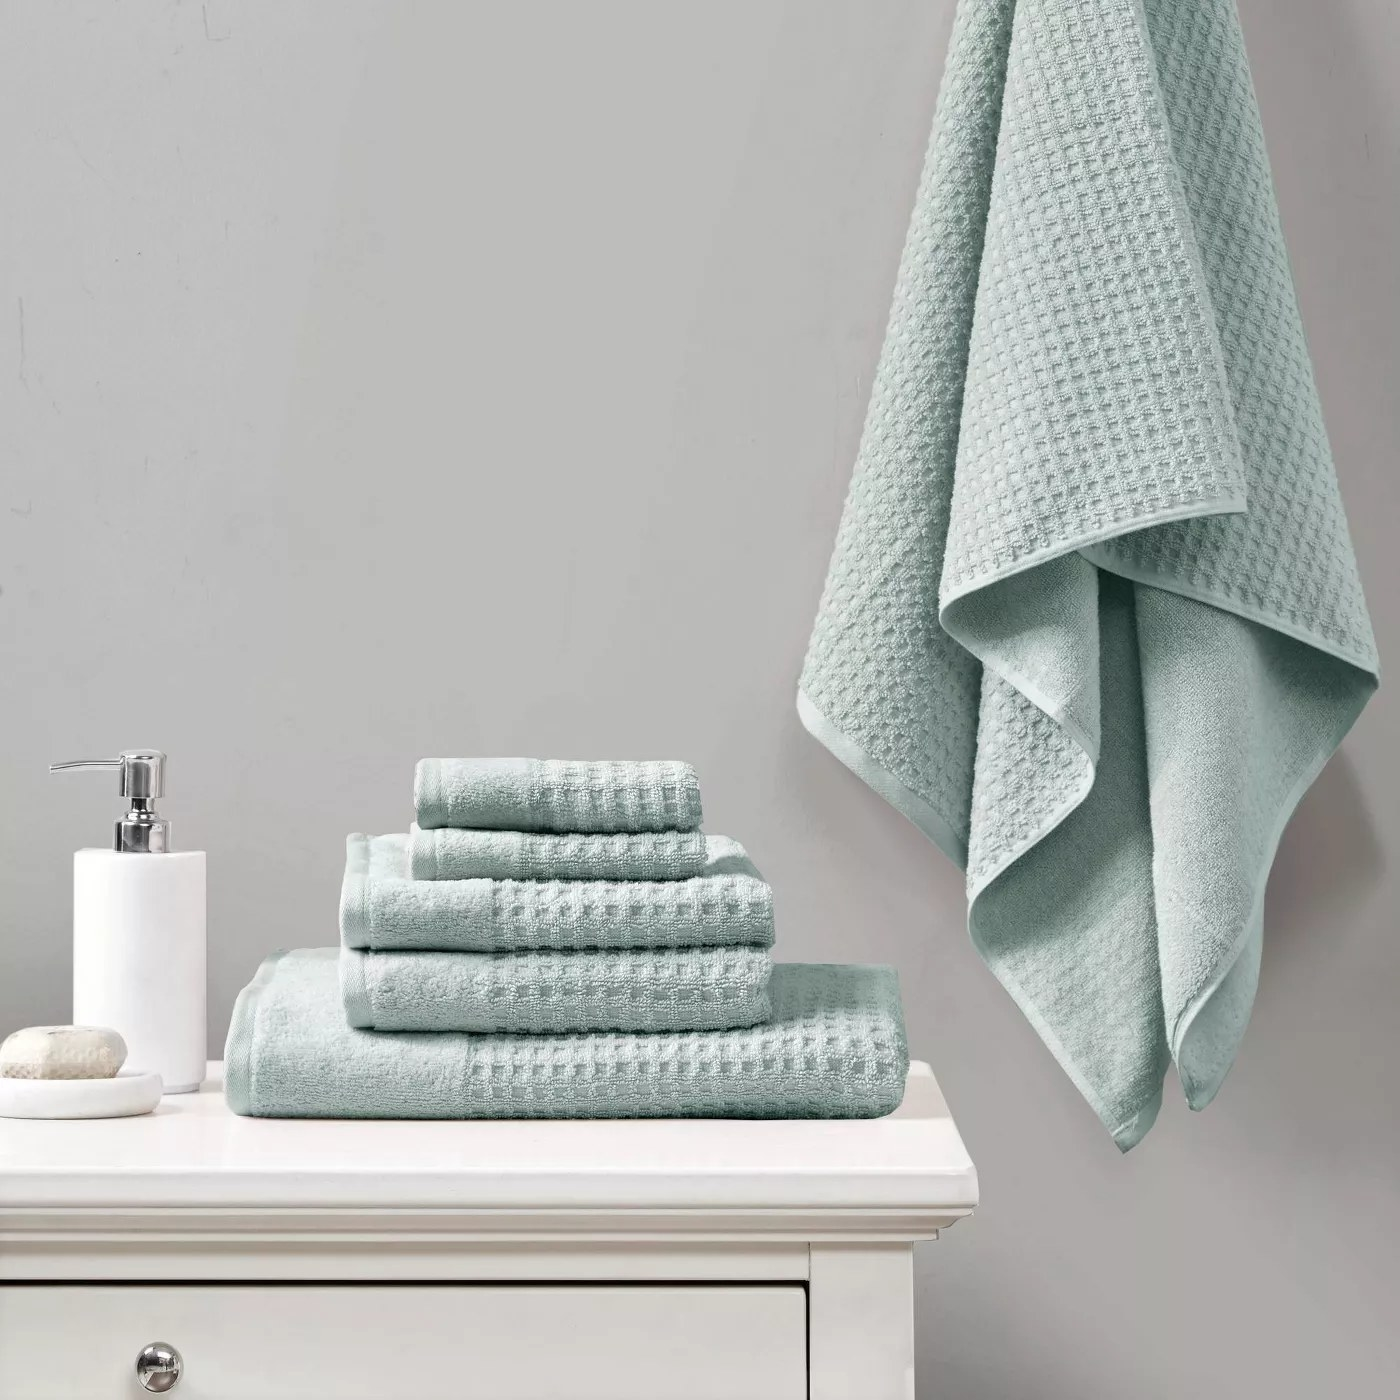 The aqua bath towel set with waffle texture on display in a bathroom